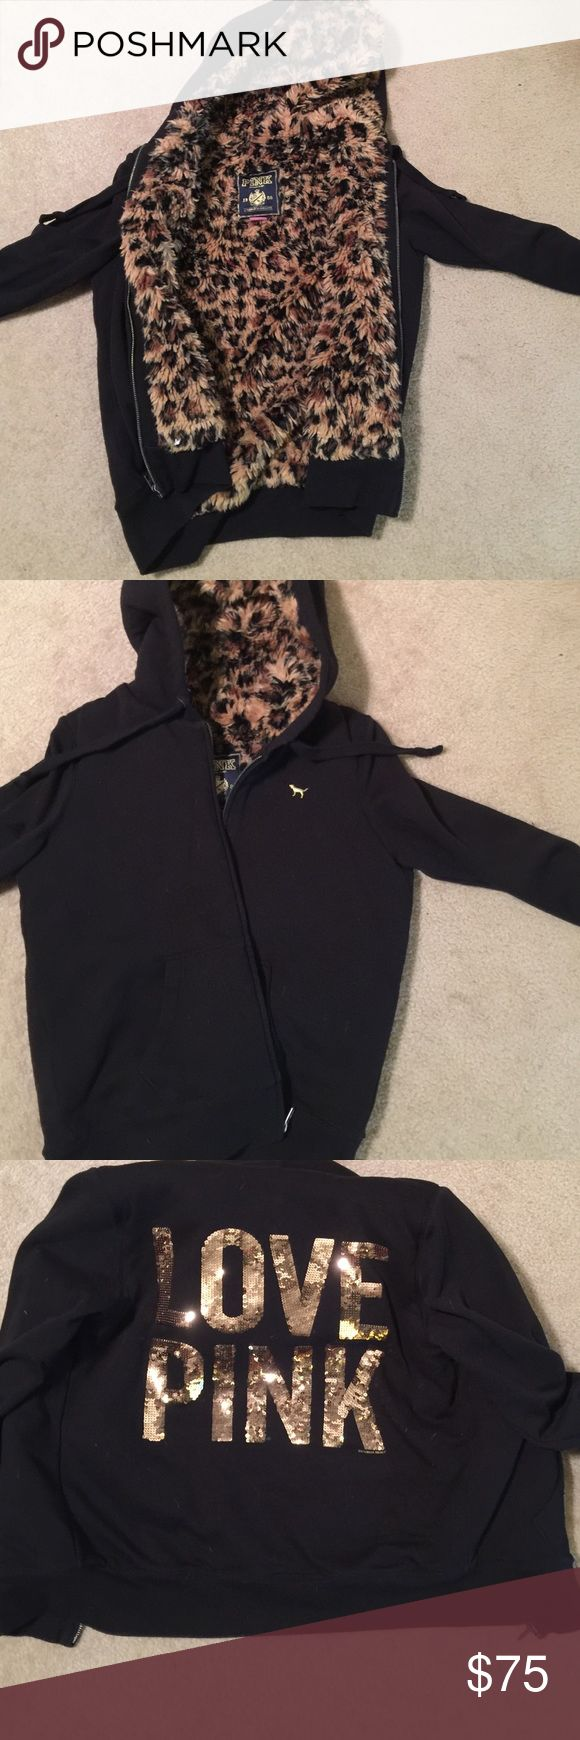 Victoria Secret jacket Gently used Victoria Secret jacket. This heavy duty jacket is lined with warm animal print. Zip up with drawstring hoodie. Smoke free home. All sequins are intact PINK Victoria's Secret Jackets & Coats